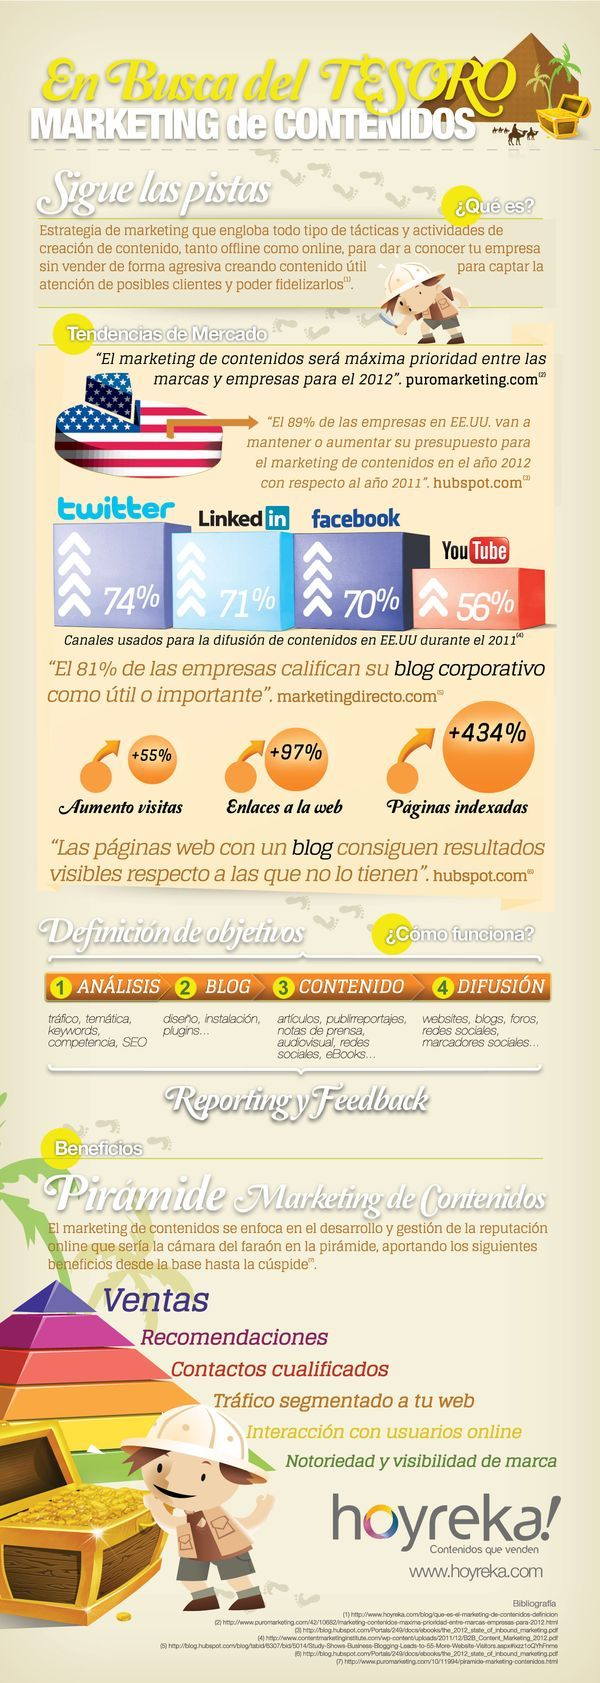 Creciente importancia del marketing de contenidos